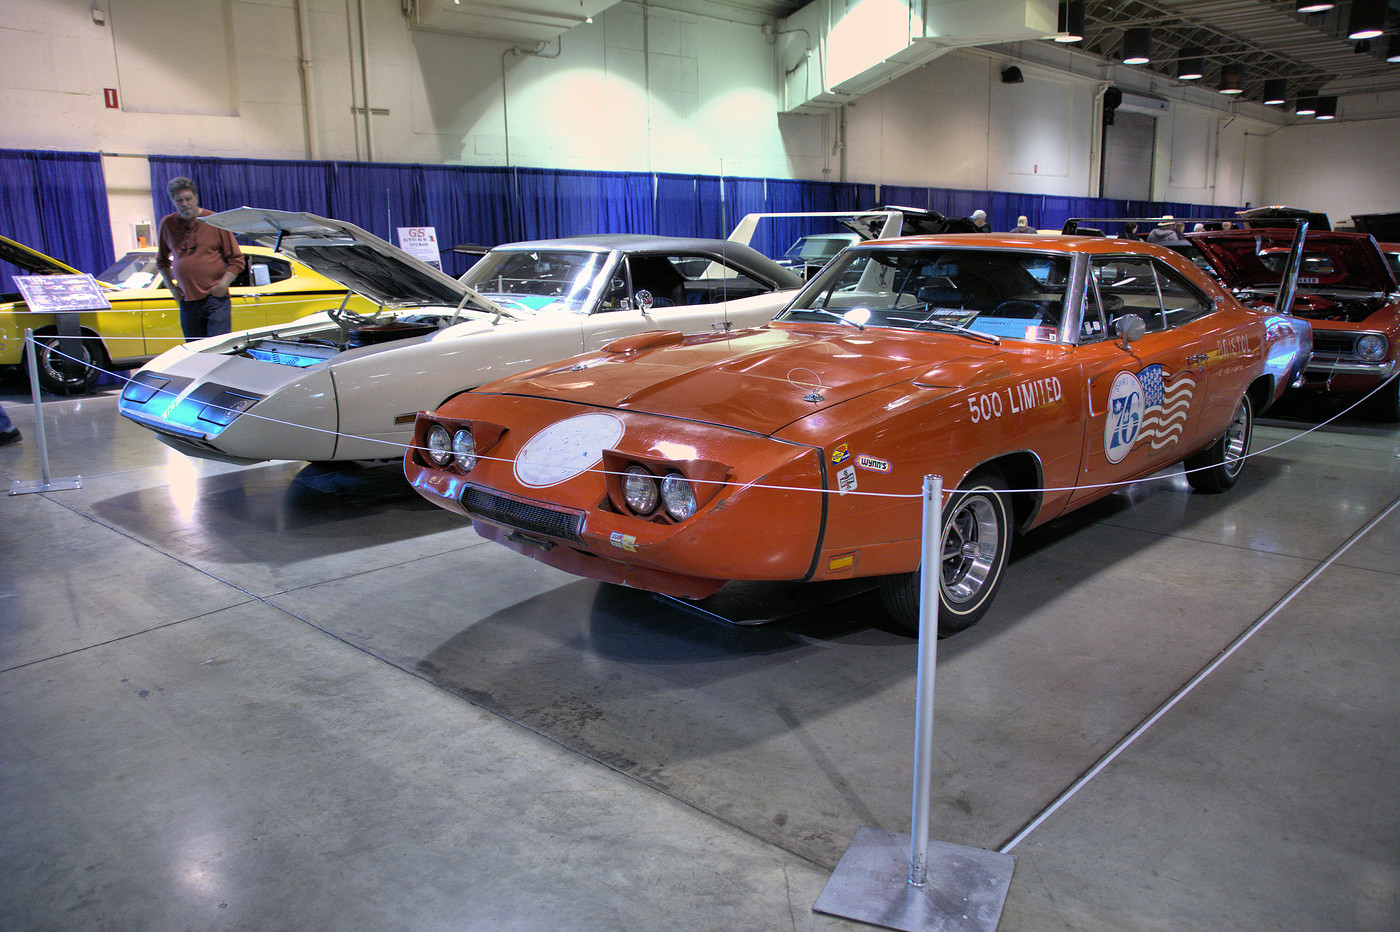 1970 Dodge Daytona and 1970 Plymouth Superbird on display at 2017 GNRS DSC 4881 -1